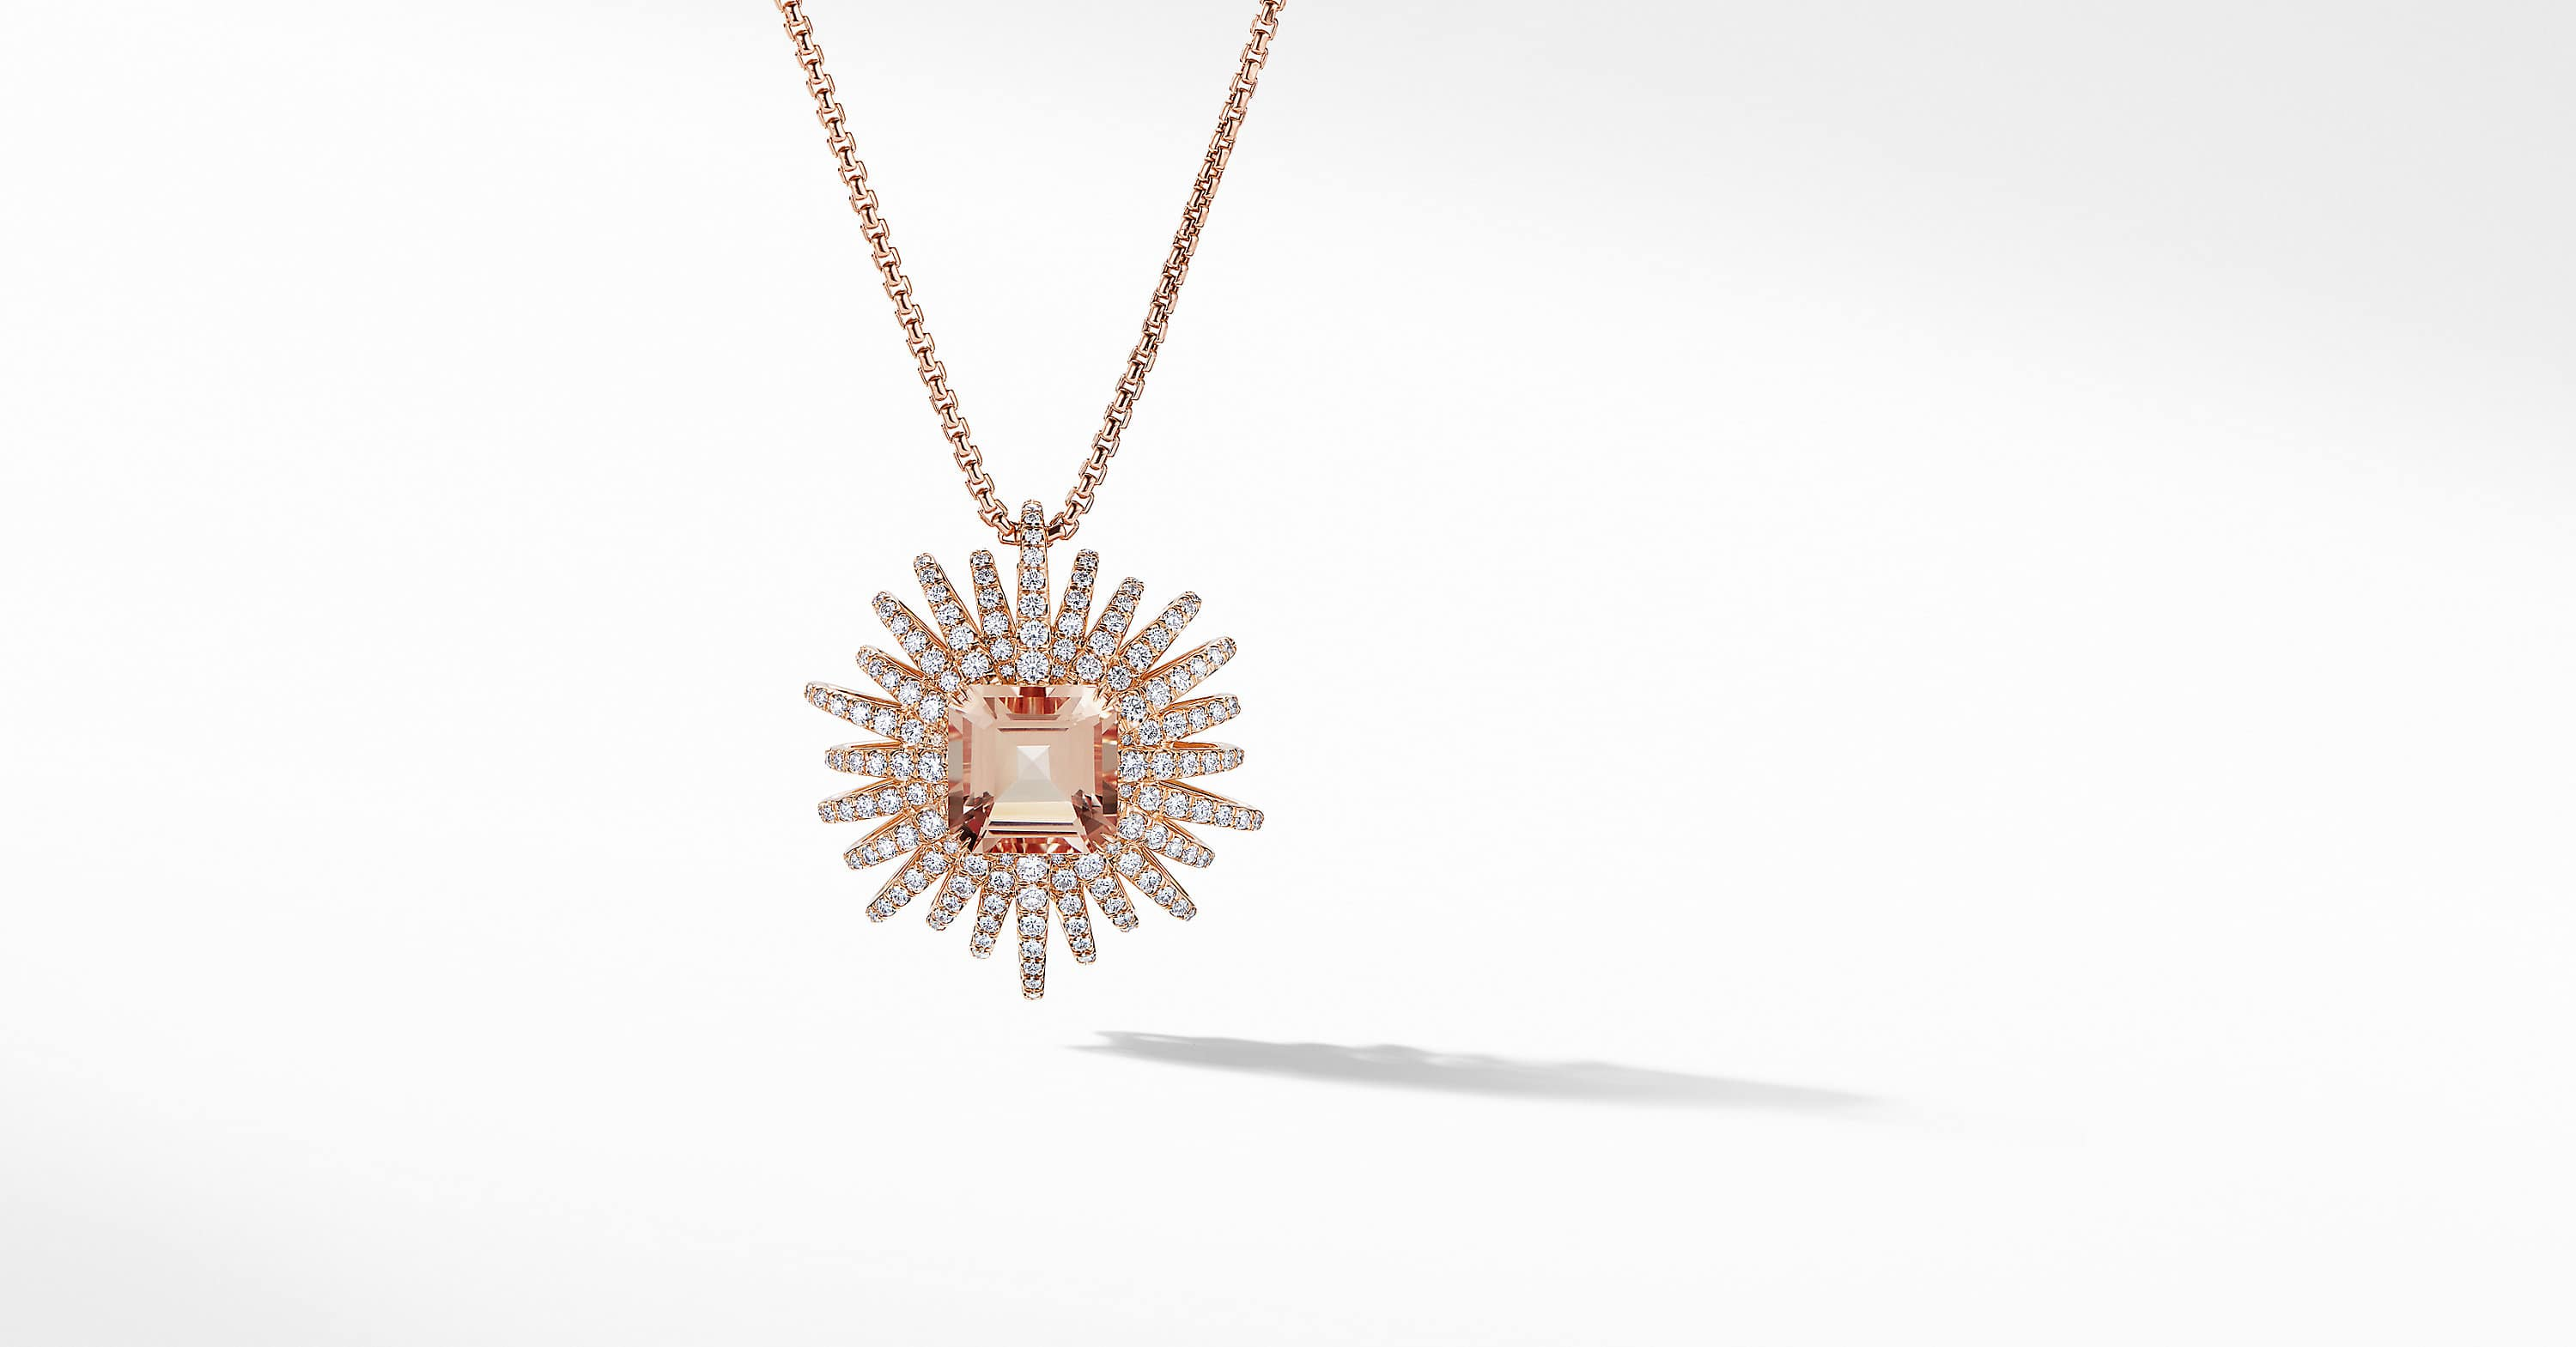 Starburst Pendant Necklace with Diamonds in 18K Rose Gold, 30mm